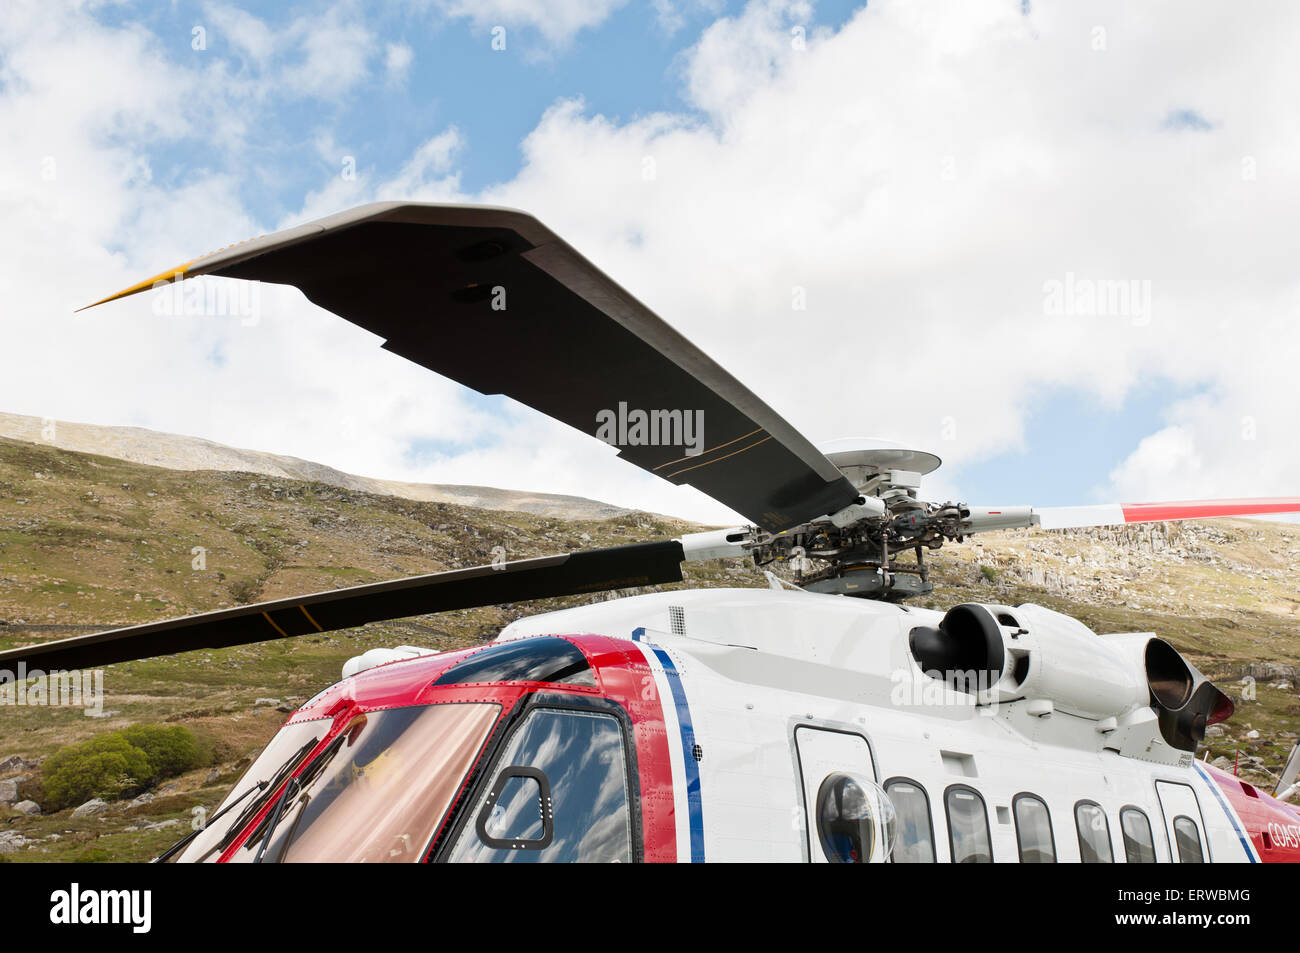 The Sikorsky S92 has Growth Rotor Blades with anhedral blade tips providing enhanced lift and reduced blade-vortex - Stock Image